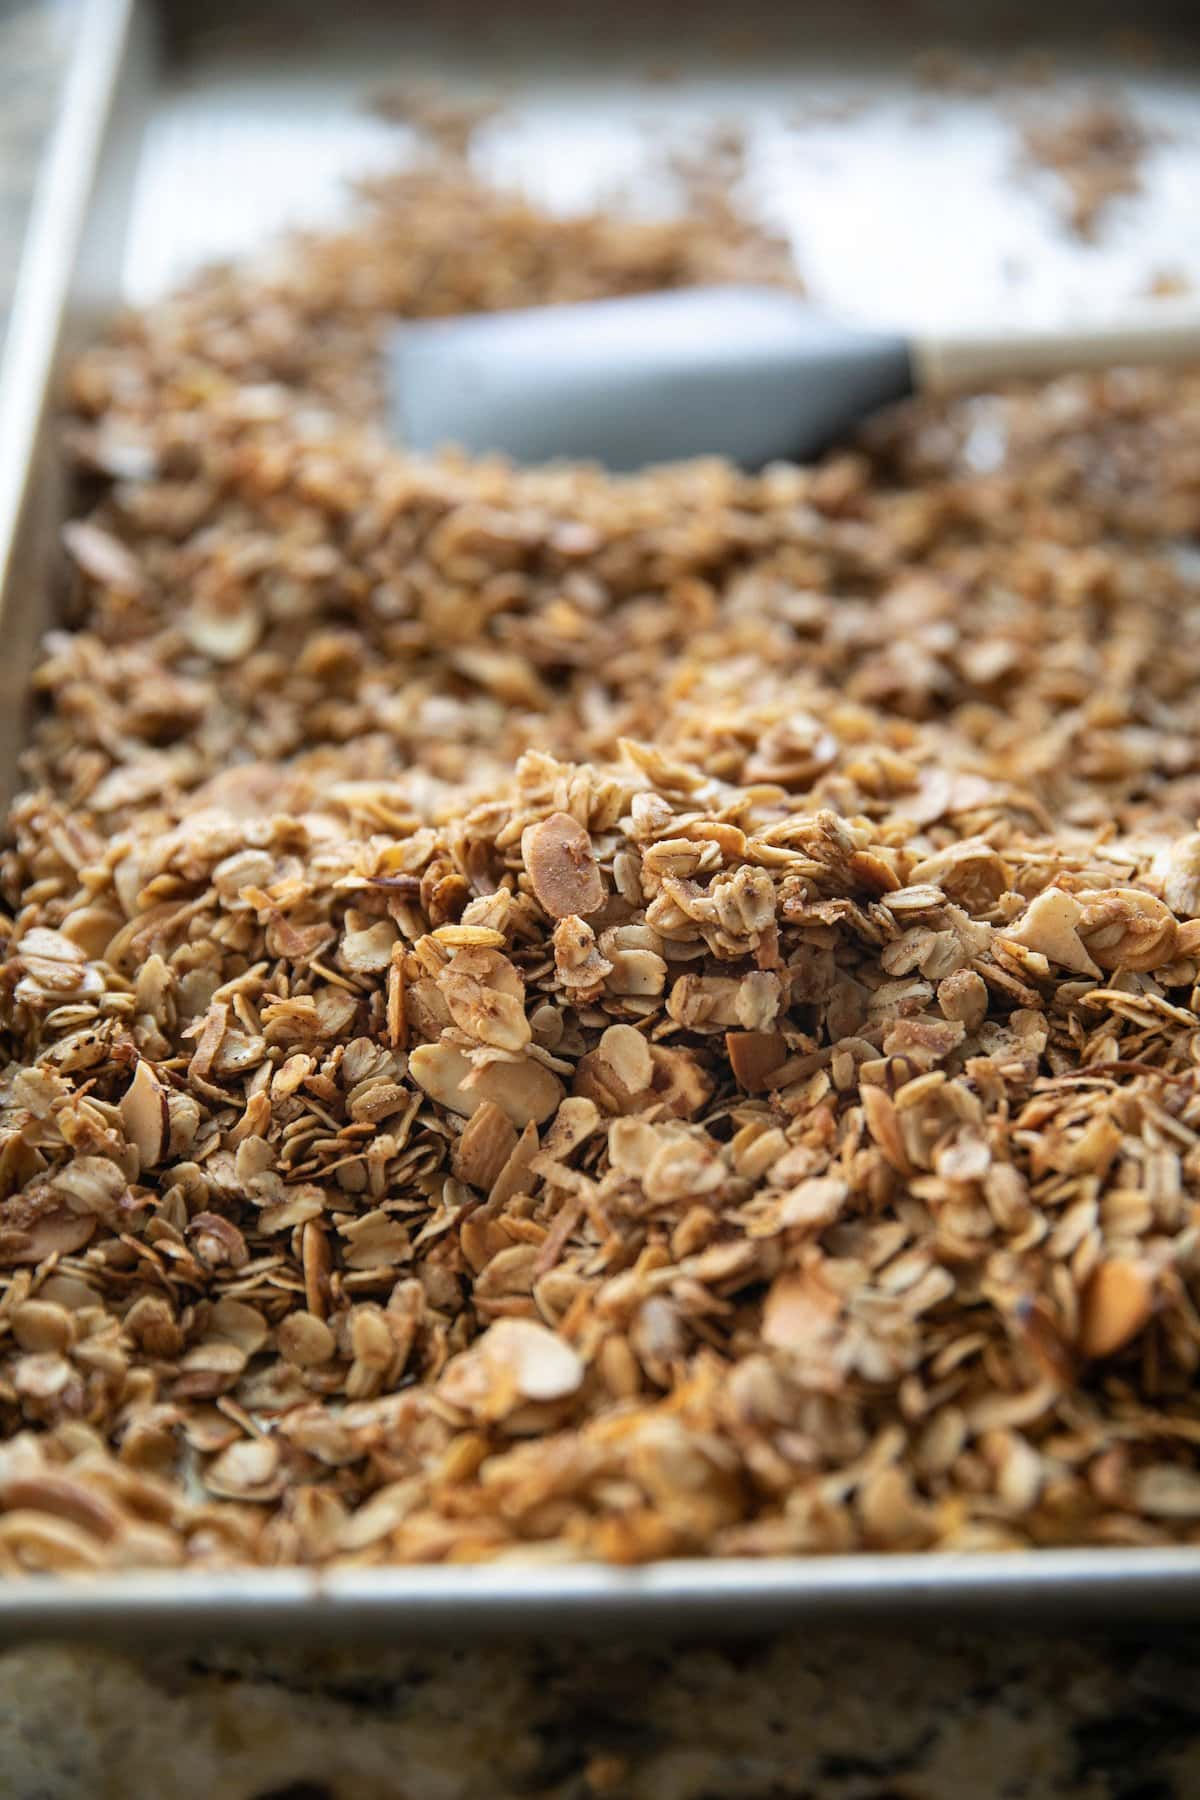 finished granola in a baking sheet